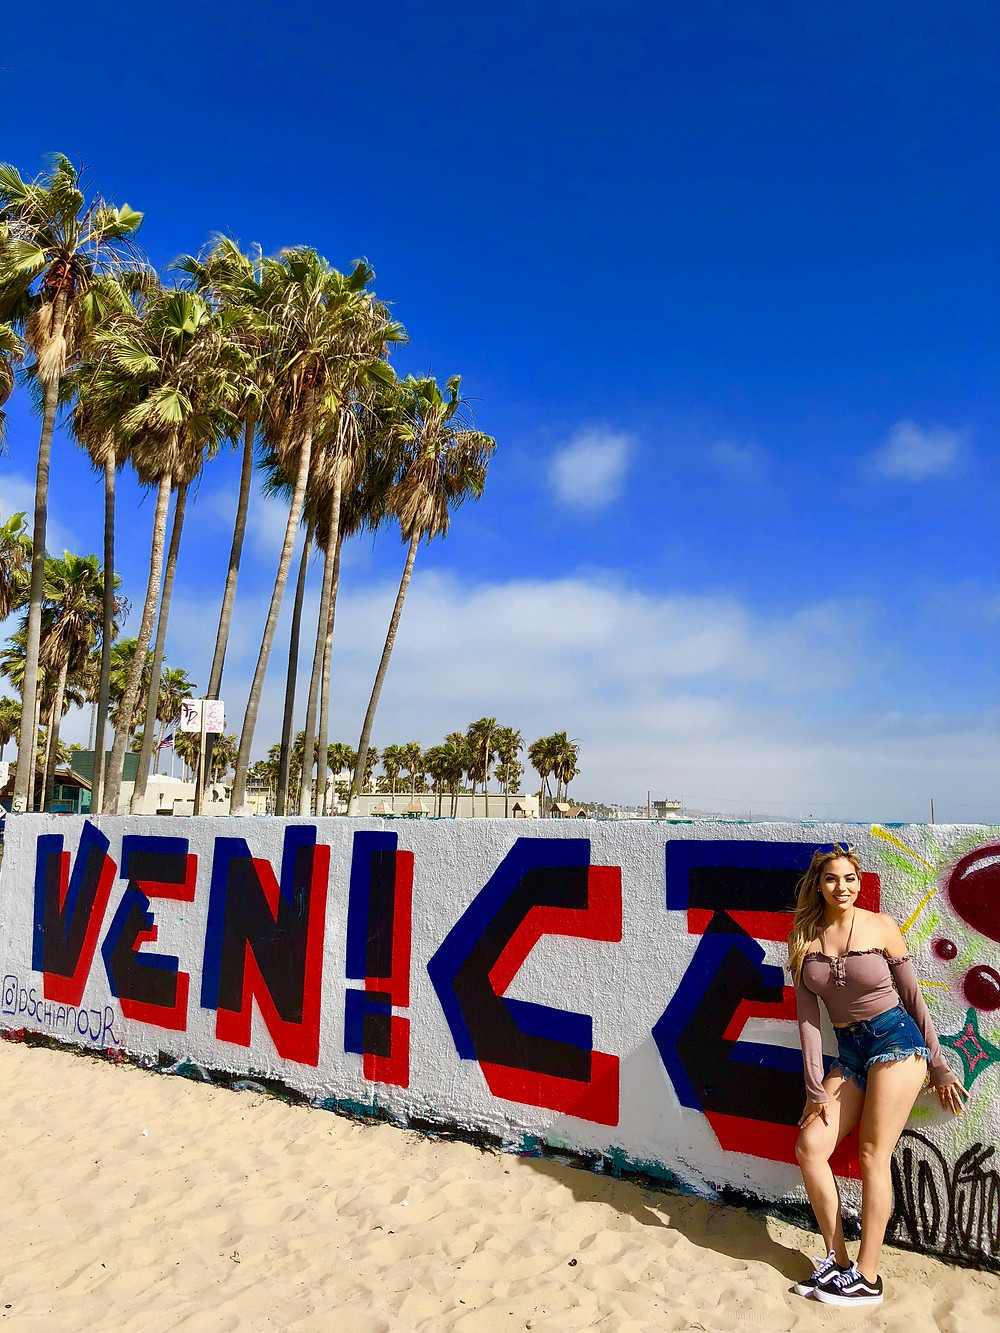 Painted wall that says Venice, palm trees & Mel